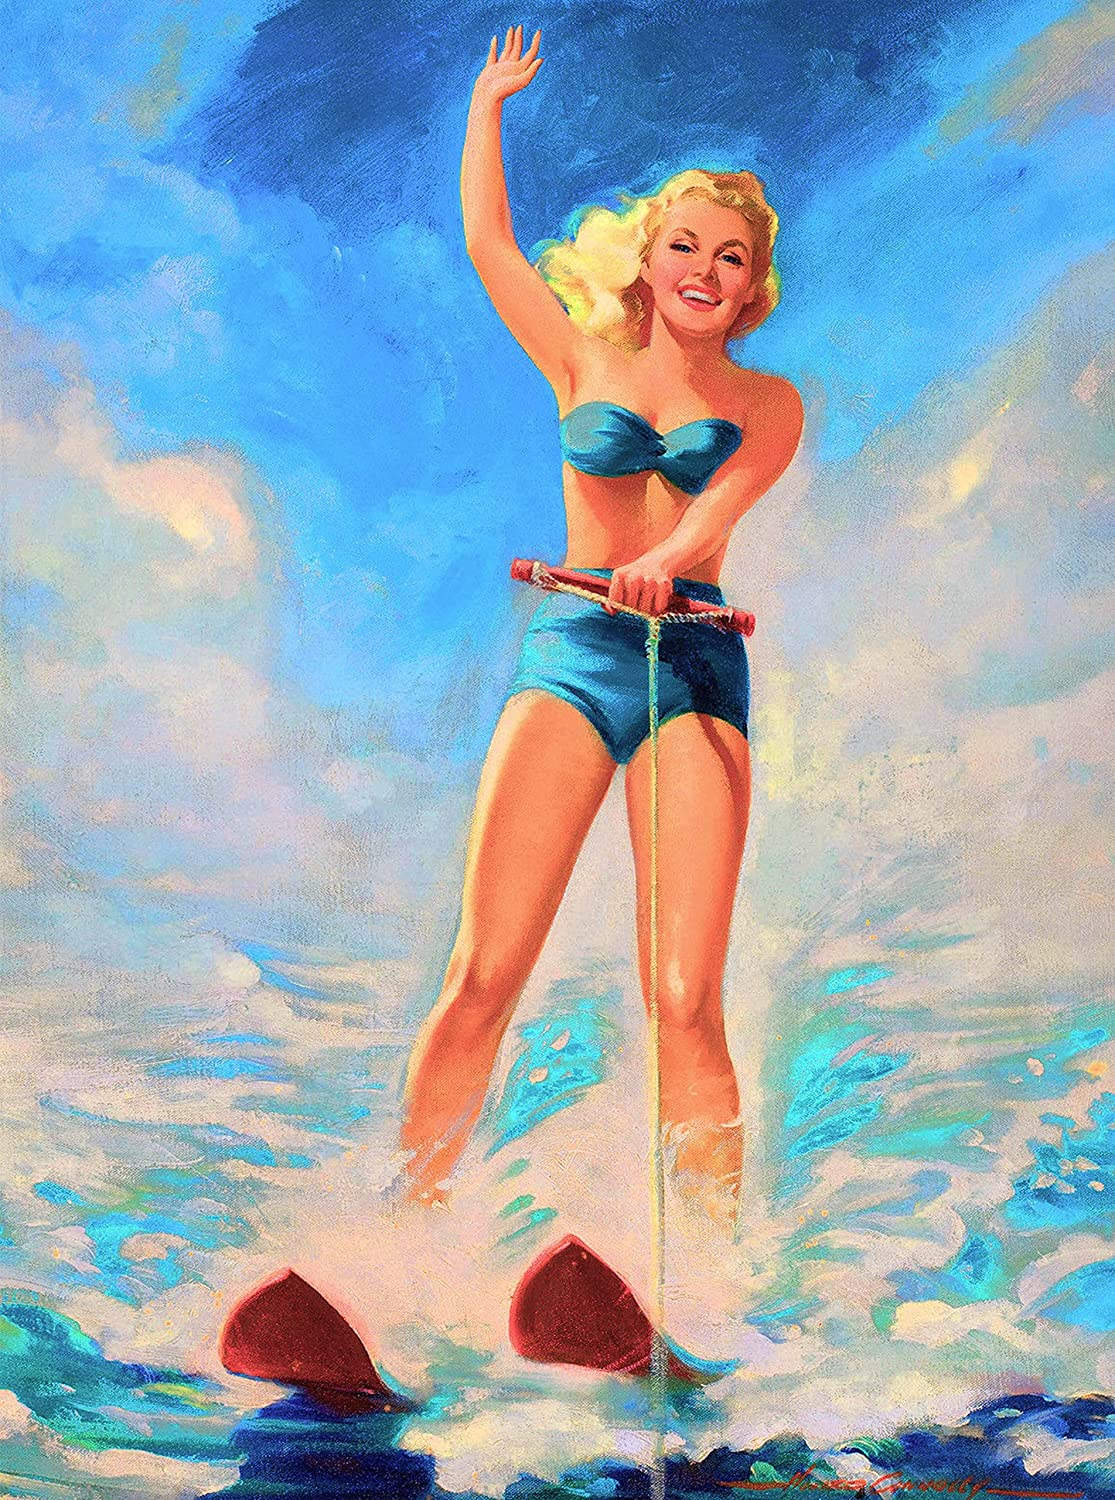 A SLICE IN TIME 1940s Pin-Up Girl Let's Water Ski Picture Poster Print Art Vintage Pin Up. Poster Measures 10 x 13.5 inches